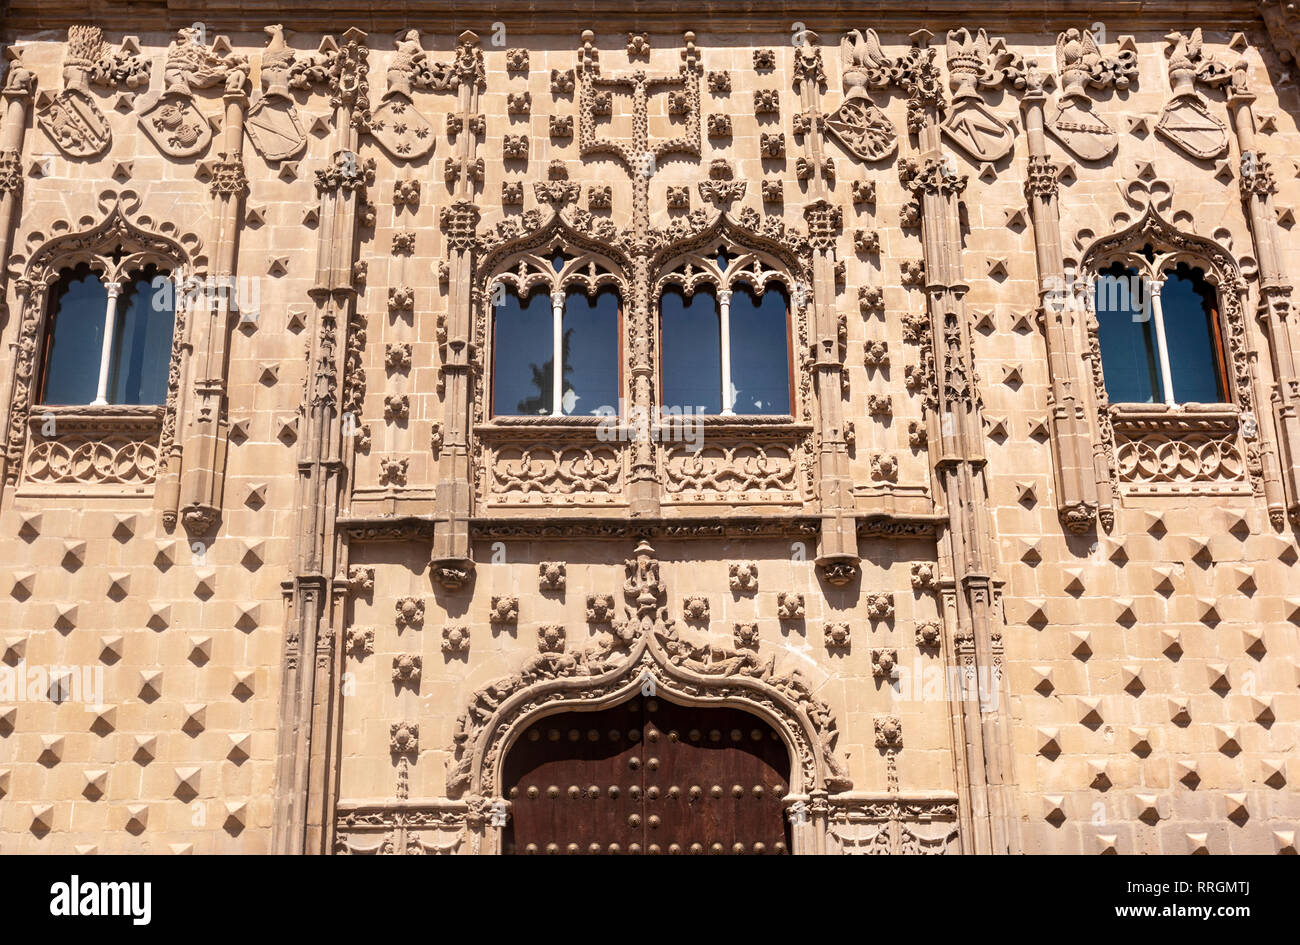 Jabalquinto Palace (Palacio de Jabalquinto), Gothic entrance flanked by two cylindrical pilasters, Baeza, Jaen province, Andalucia, Spain Stock Photo